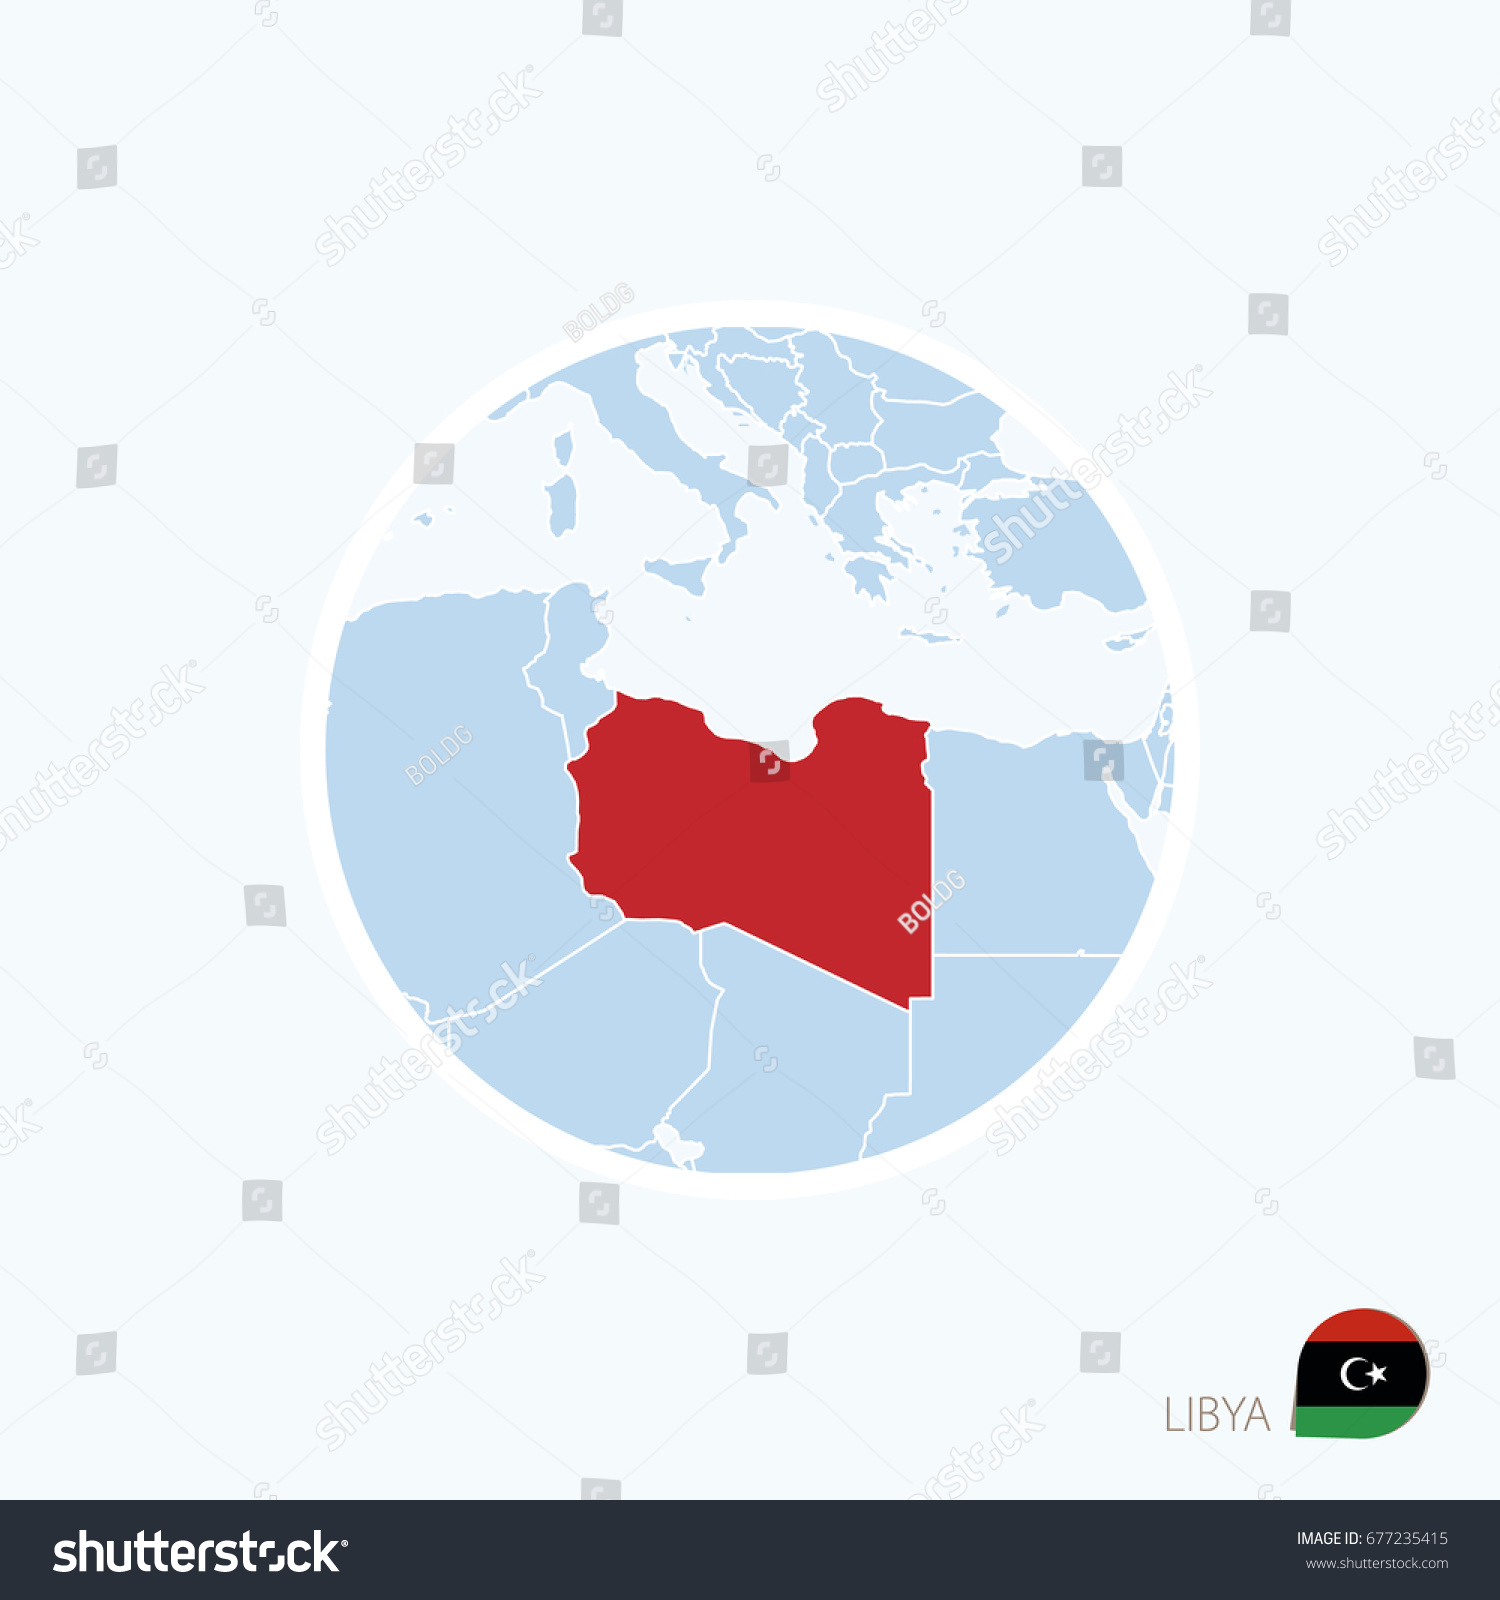 Map icon libya blue map europe stock illustration 677235415 map icon of libya blue map of europe with highlighted tripoli in red color publicscrutiny Image collections